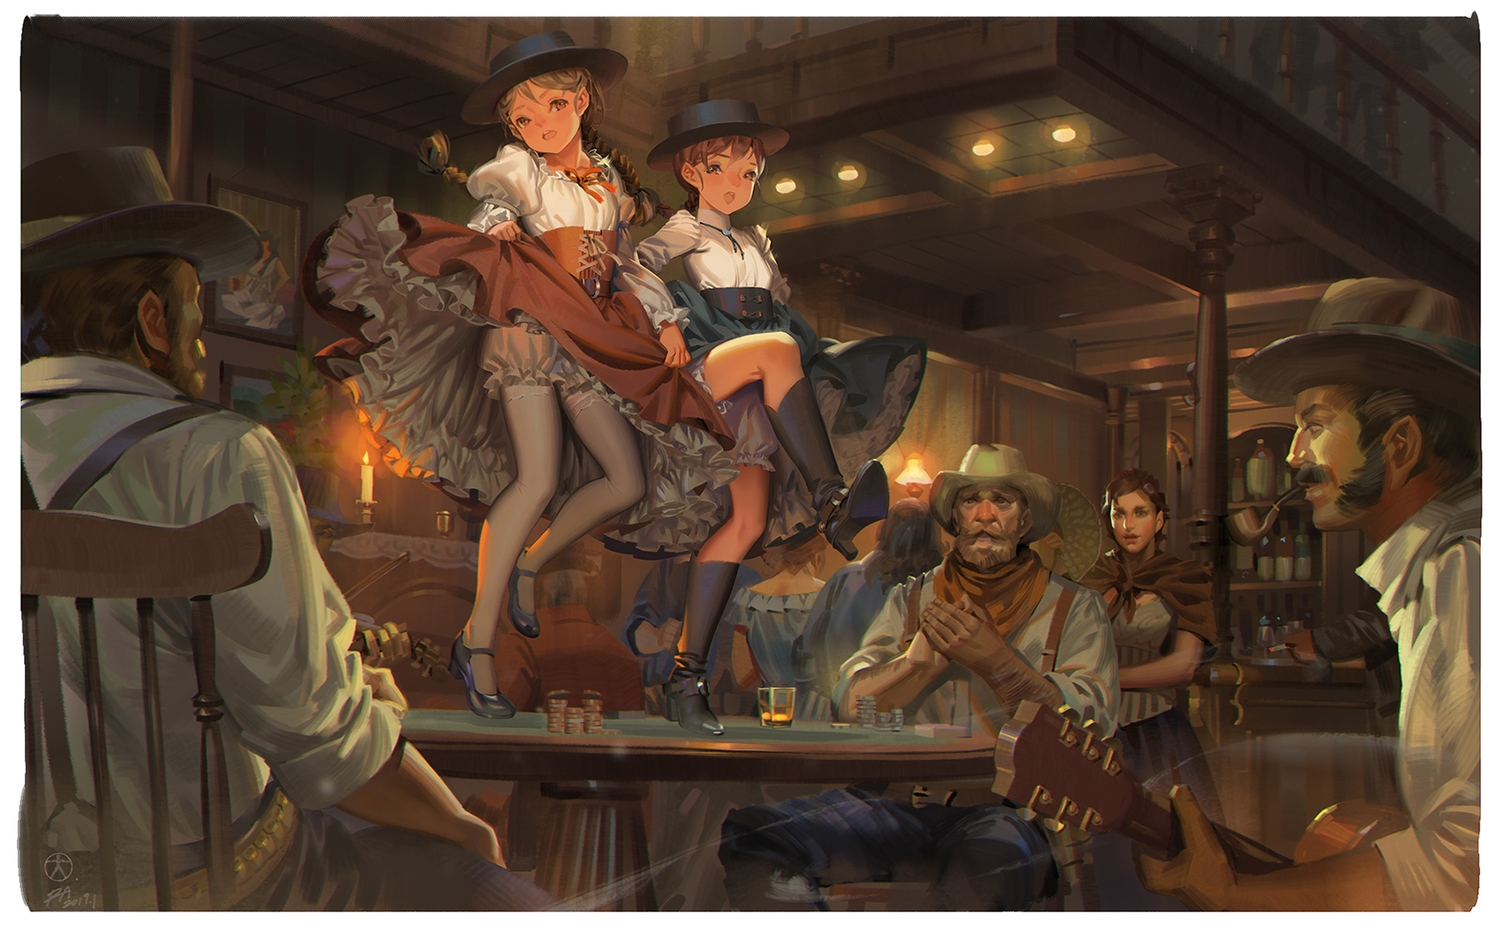 alphonse bloomers boots braids brown_hair cigarette drink group guitar hat instrument loli long_hair male original pantyhose ponytail scarf signed skirt_lift smoking twintails violin